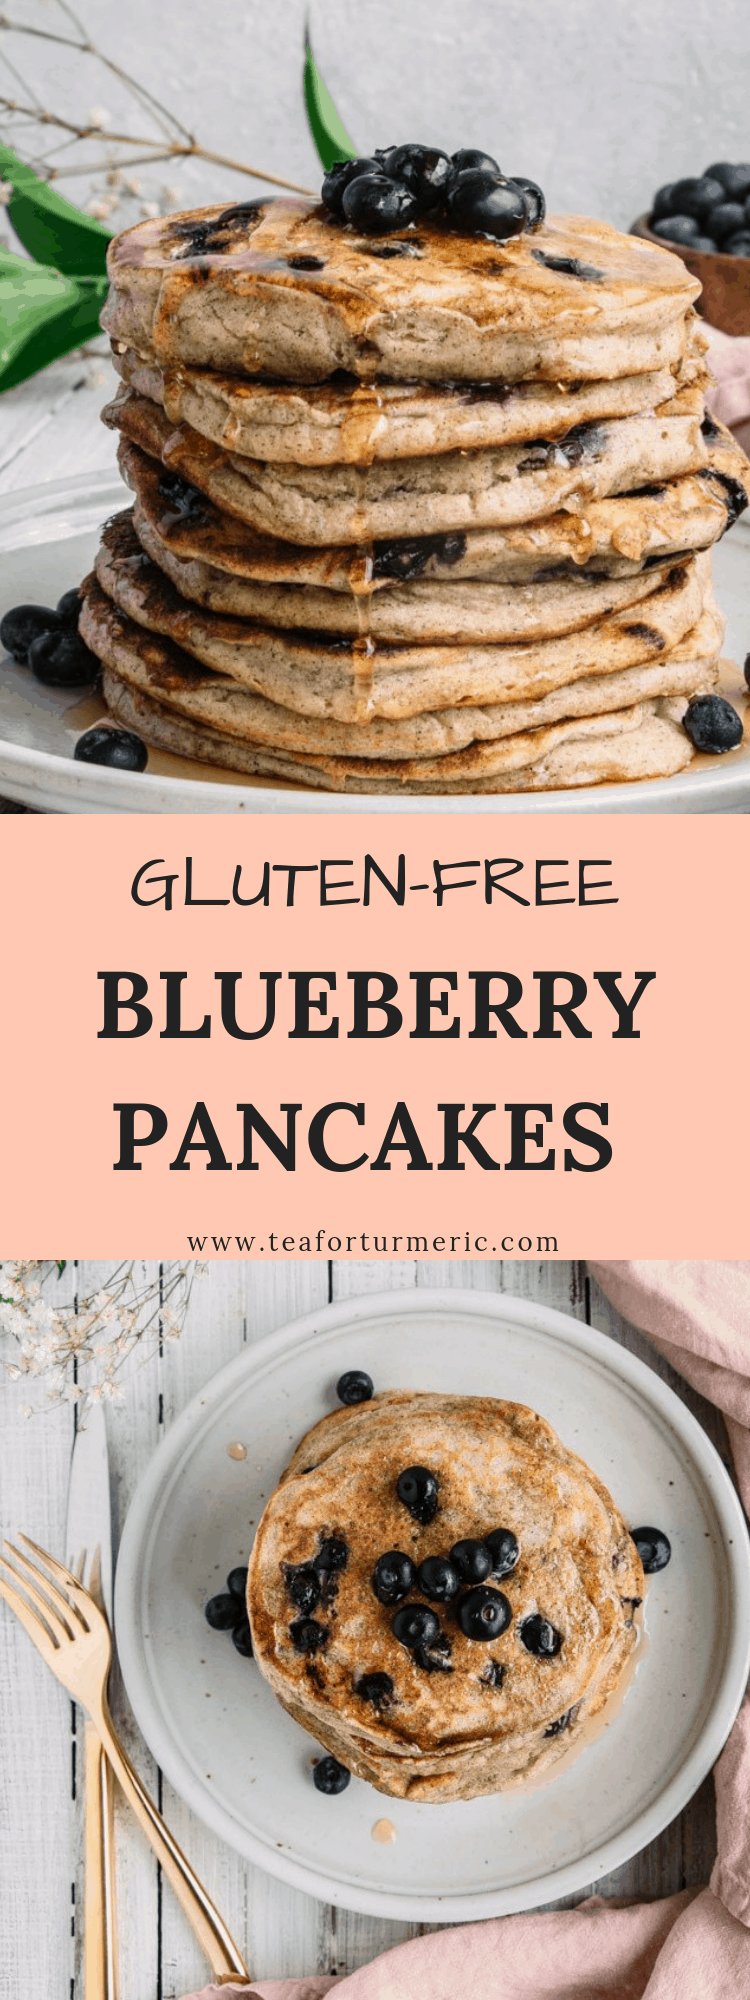 This gluten-free blueberry pancakes recipe is perfect for a weekend brunch and is also a great recipe for kids! #glutenfreepancakes #glutenfree